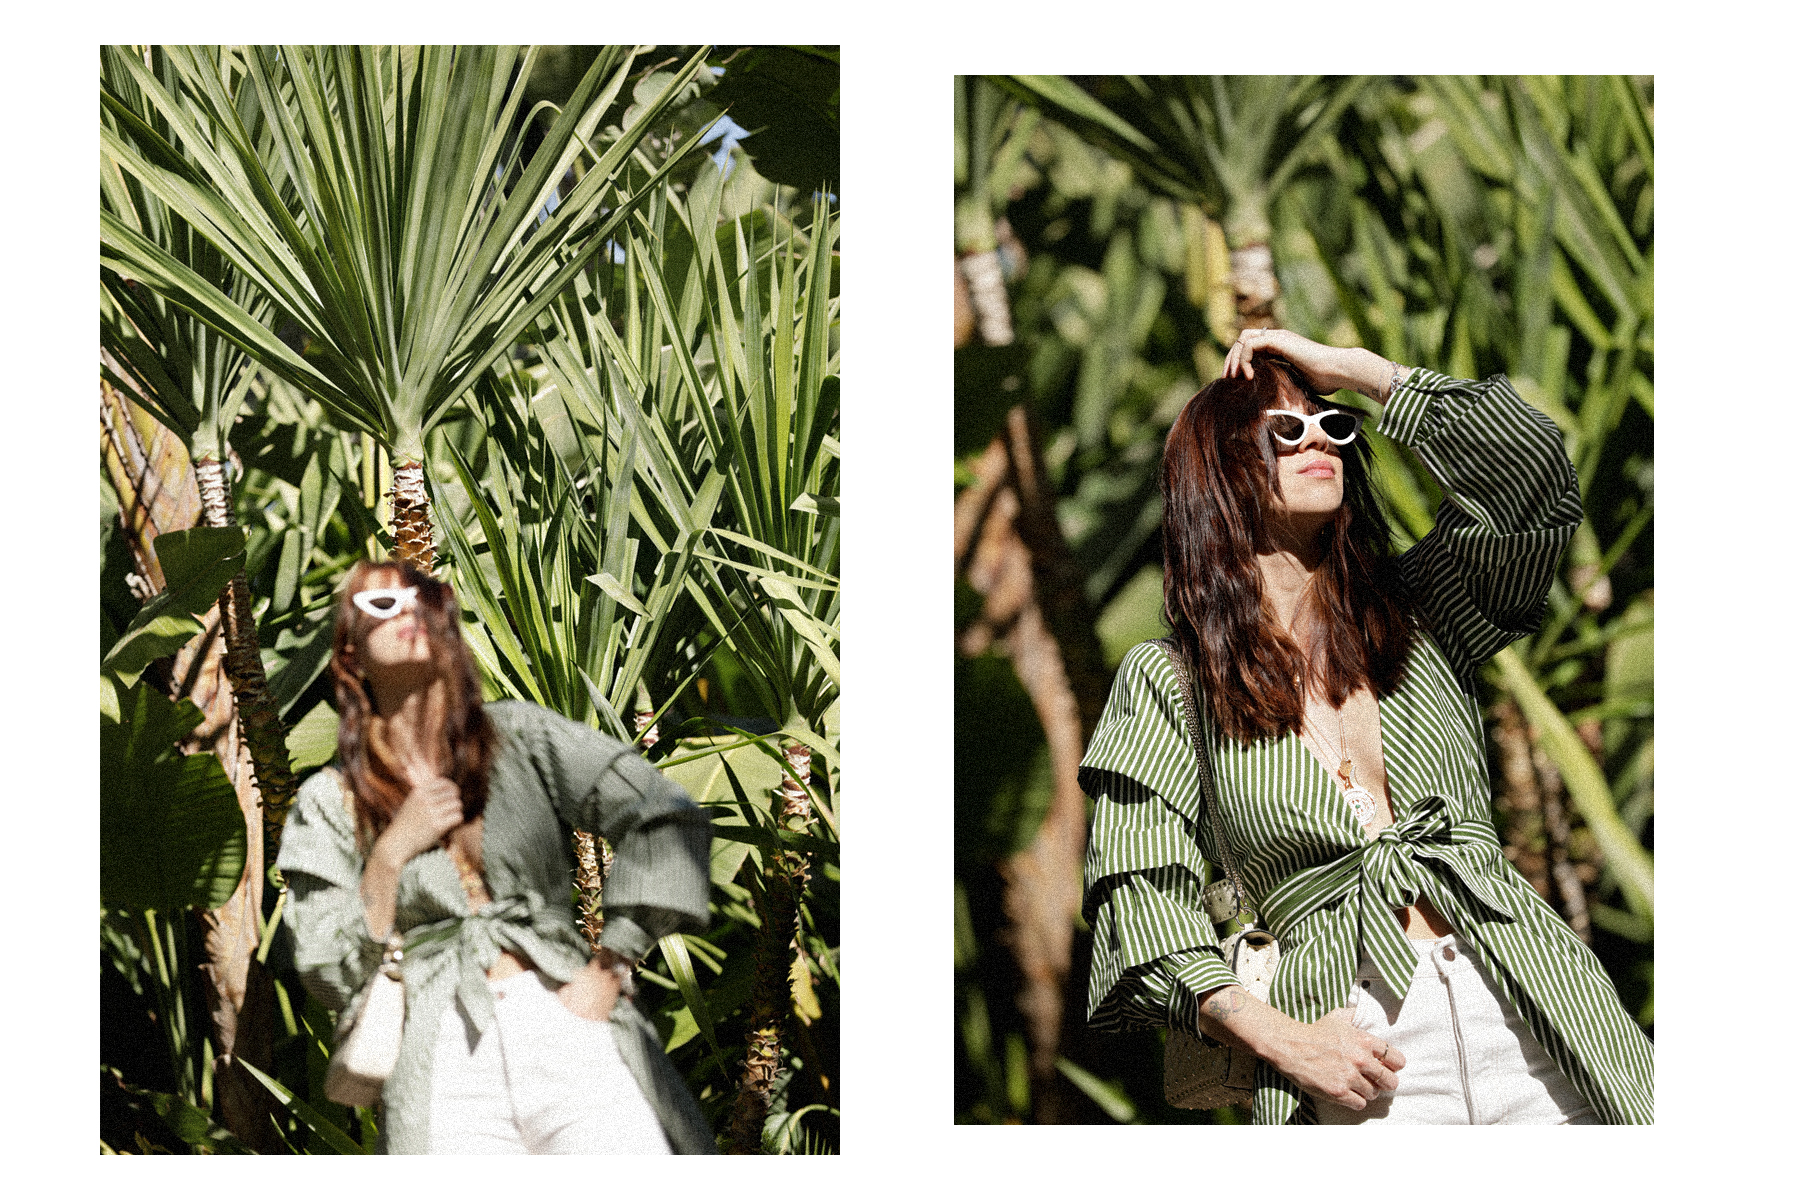 selman marrakech jungle palm tree banana leaves green dress vila breuninger maison valentino hermès oran adam selman x le specs sunglasses last lolita dress as top stripes green max bechmann fotografie film düsseldorf ricarda schernus catsanddogsblog 4